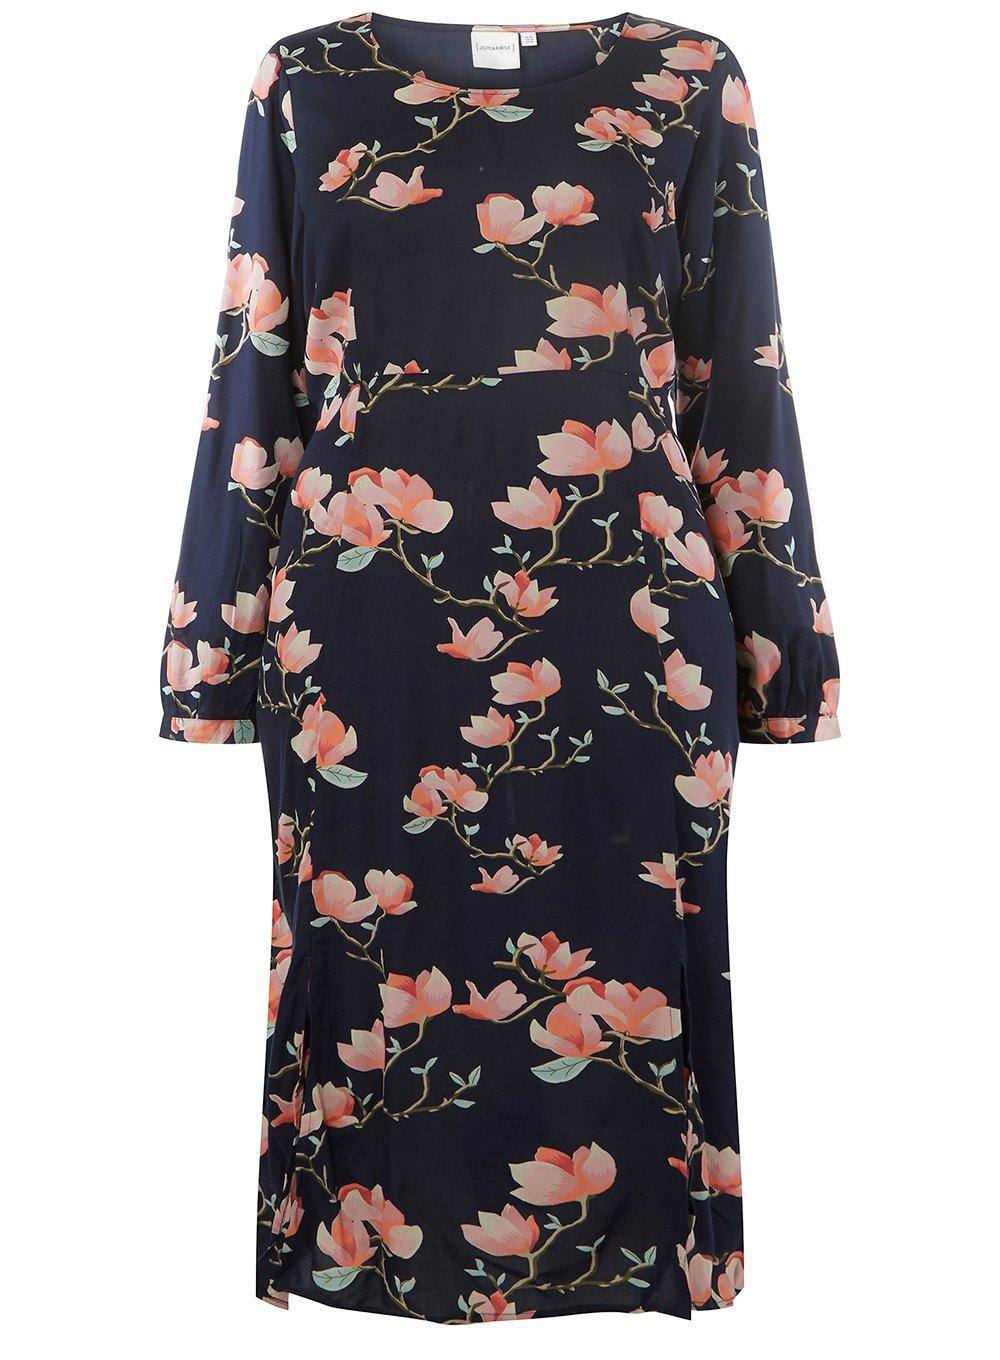 Buy Cheap Best Sale From China Cheap Online Dorothy Perkins Womens **Juna Rose Curve Navy Floral Midi Shift Dress- 9lODMsbgm